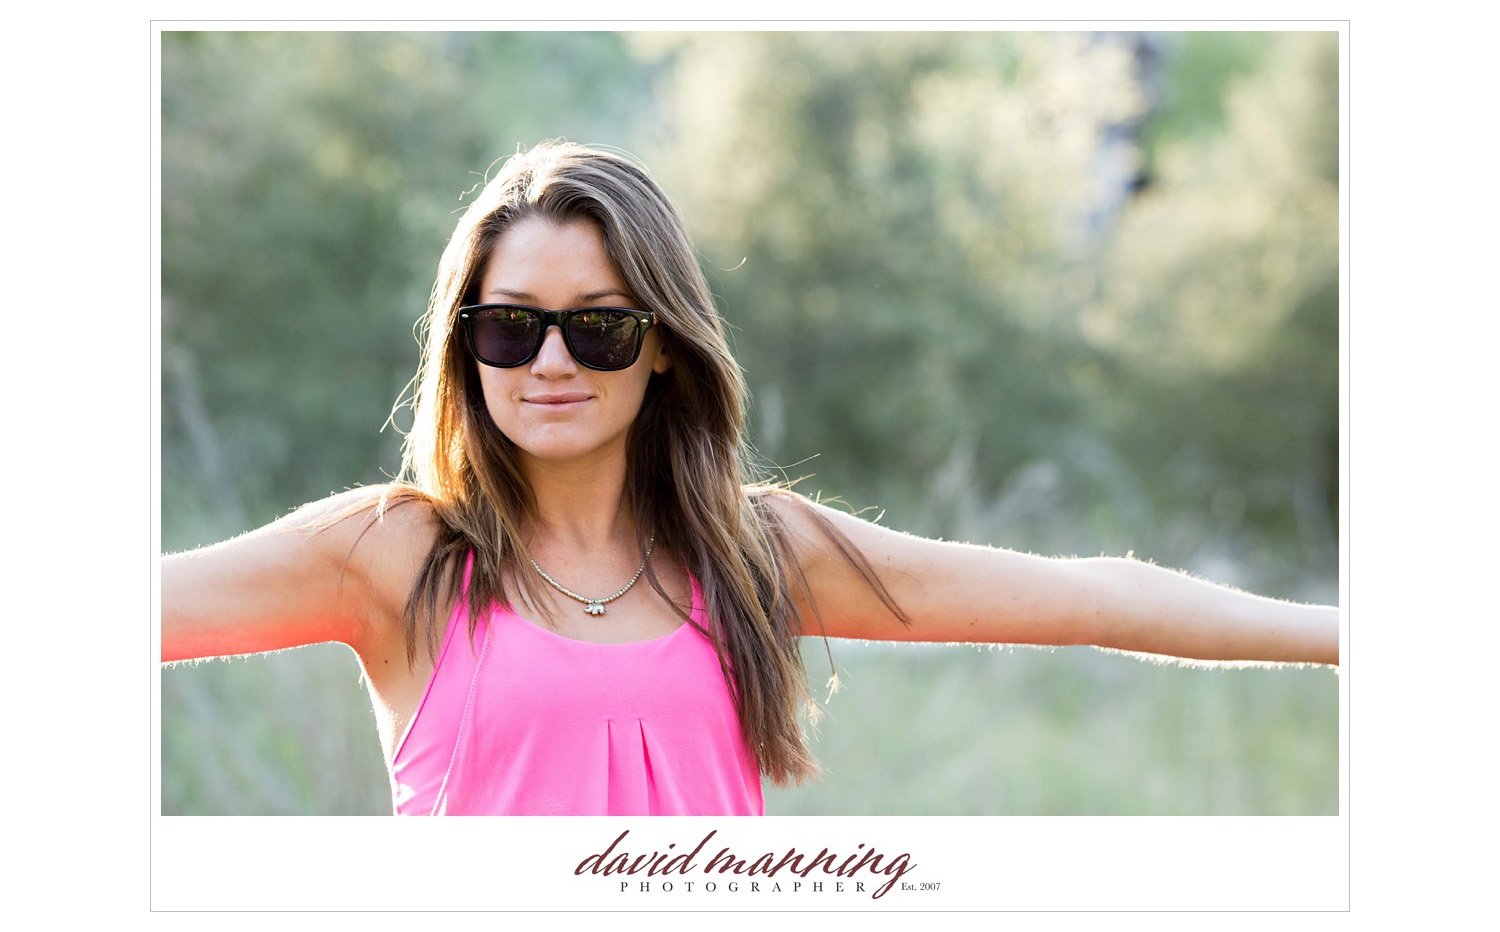 SOLO-Eyewear--Commercial-Editorial-Photos-David-Manning-Photographers-0028.jpg